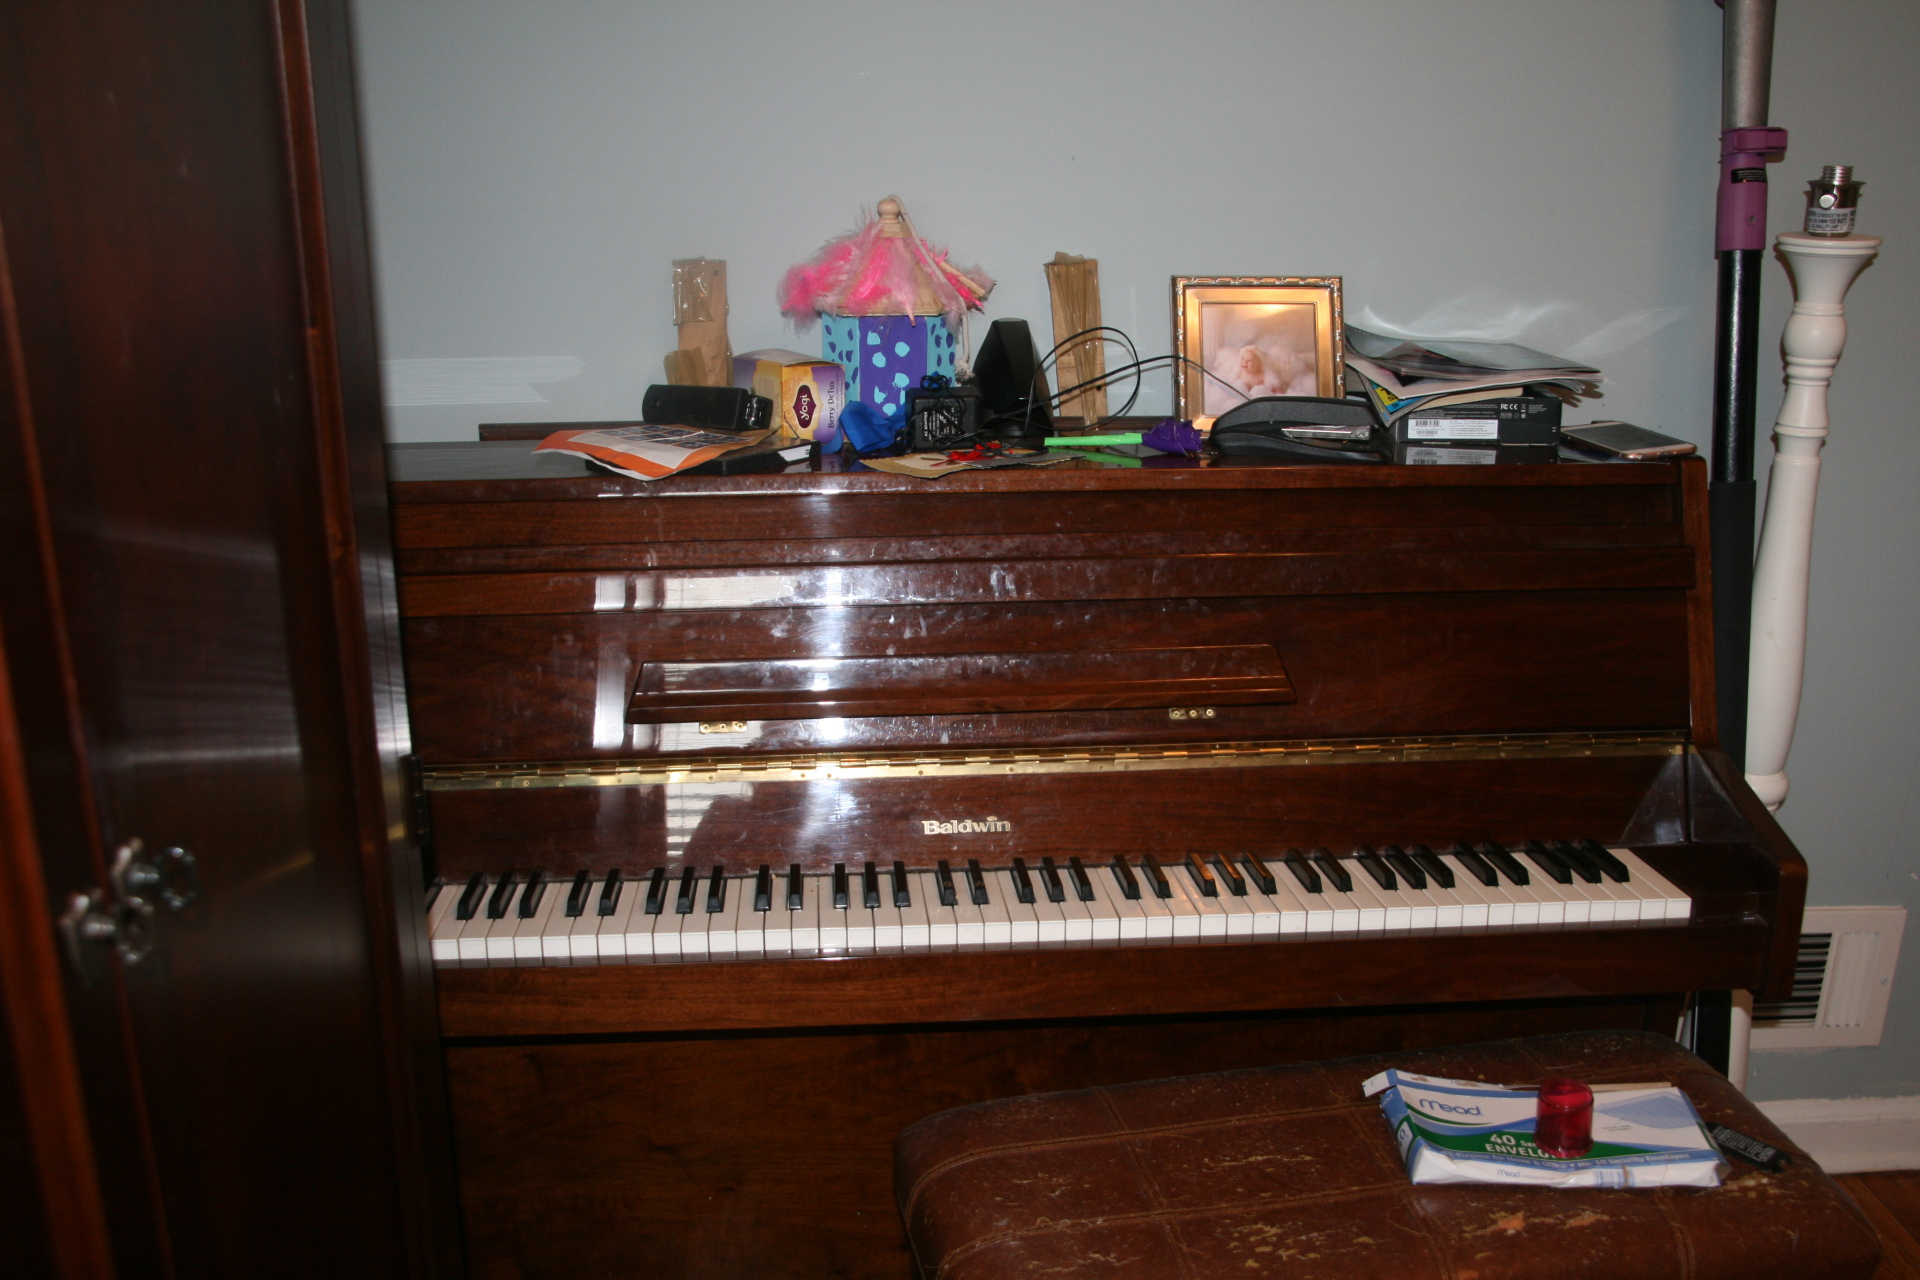 The Piano - Before